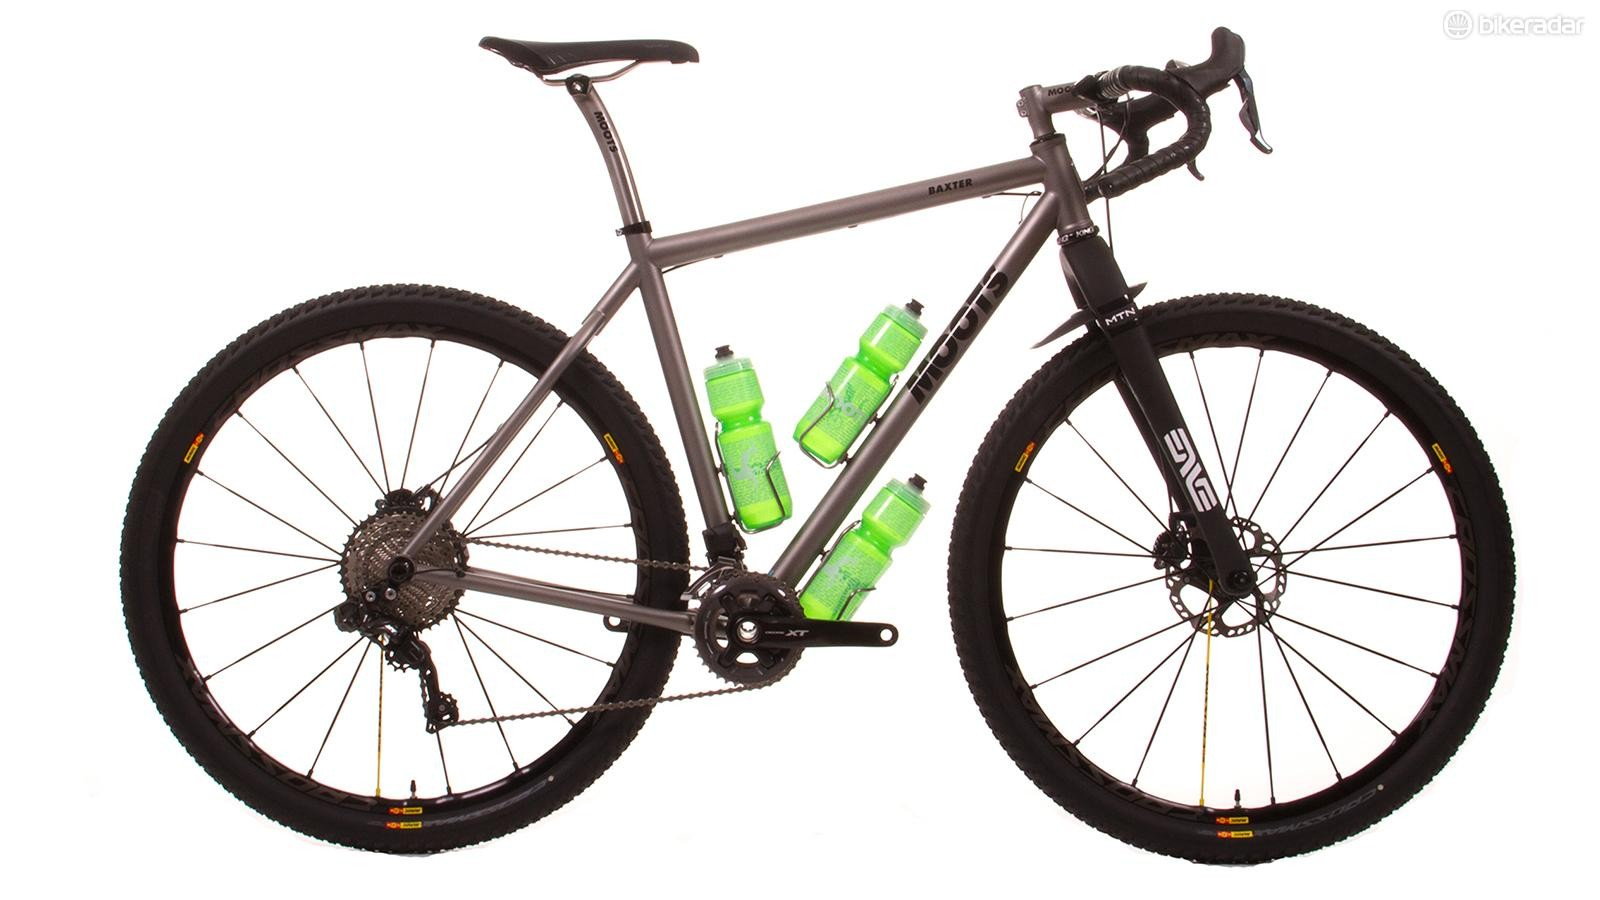 The Baxter is designed for weekend jaunts as well as ultra-endurance events such as the Tour Divide